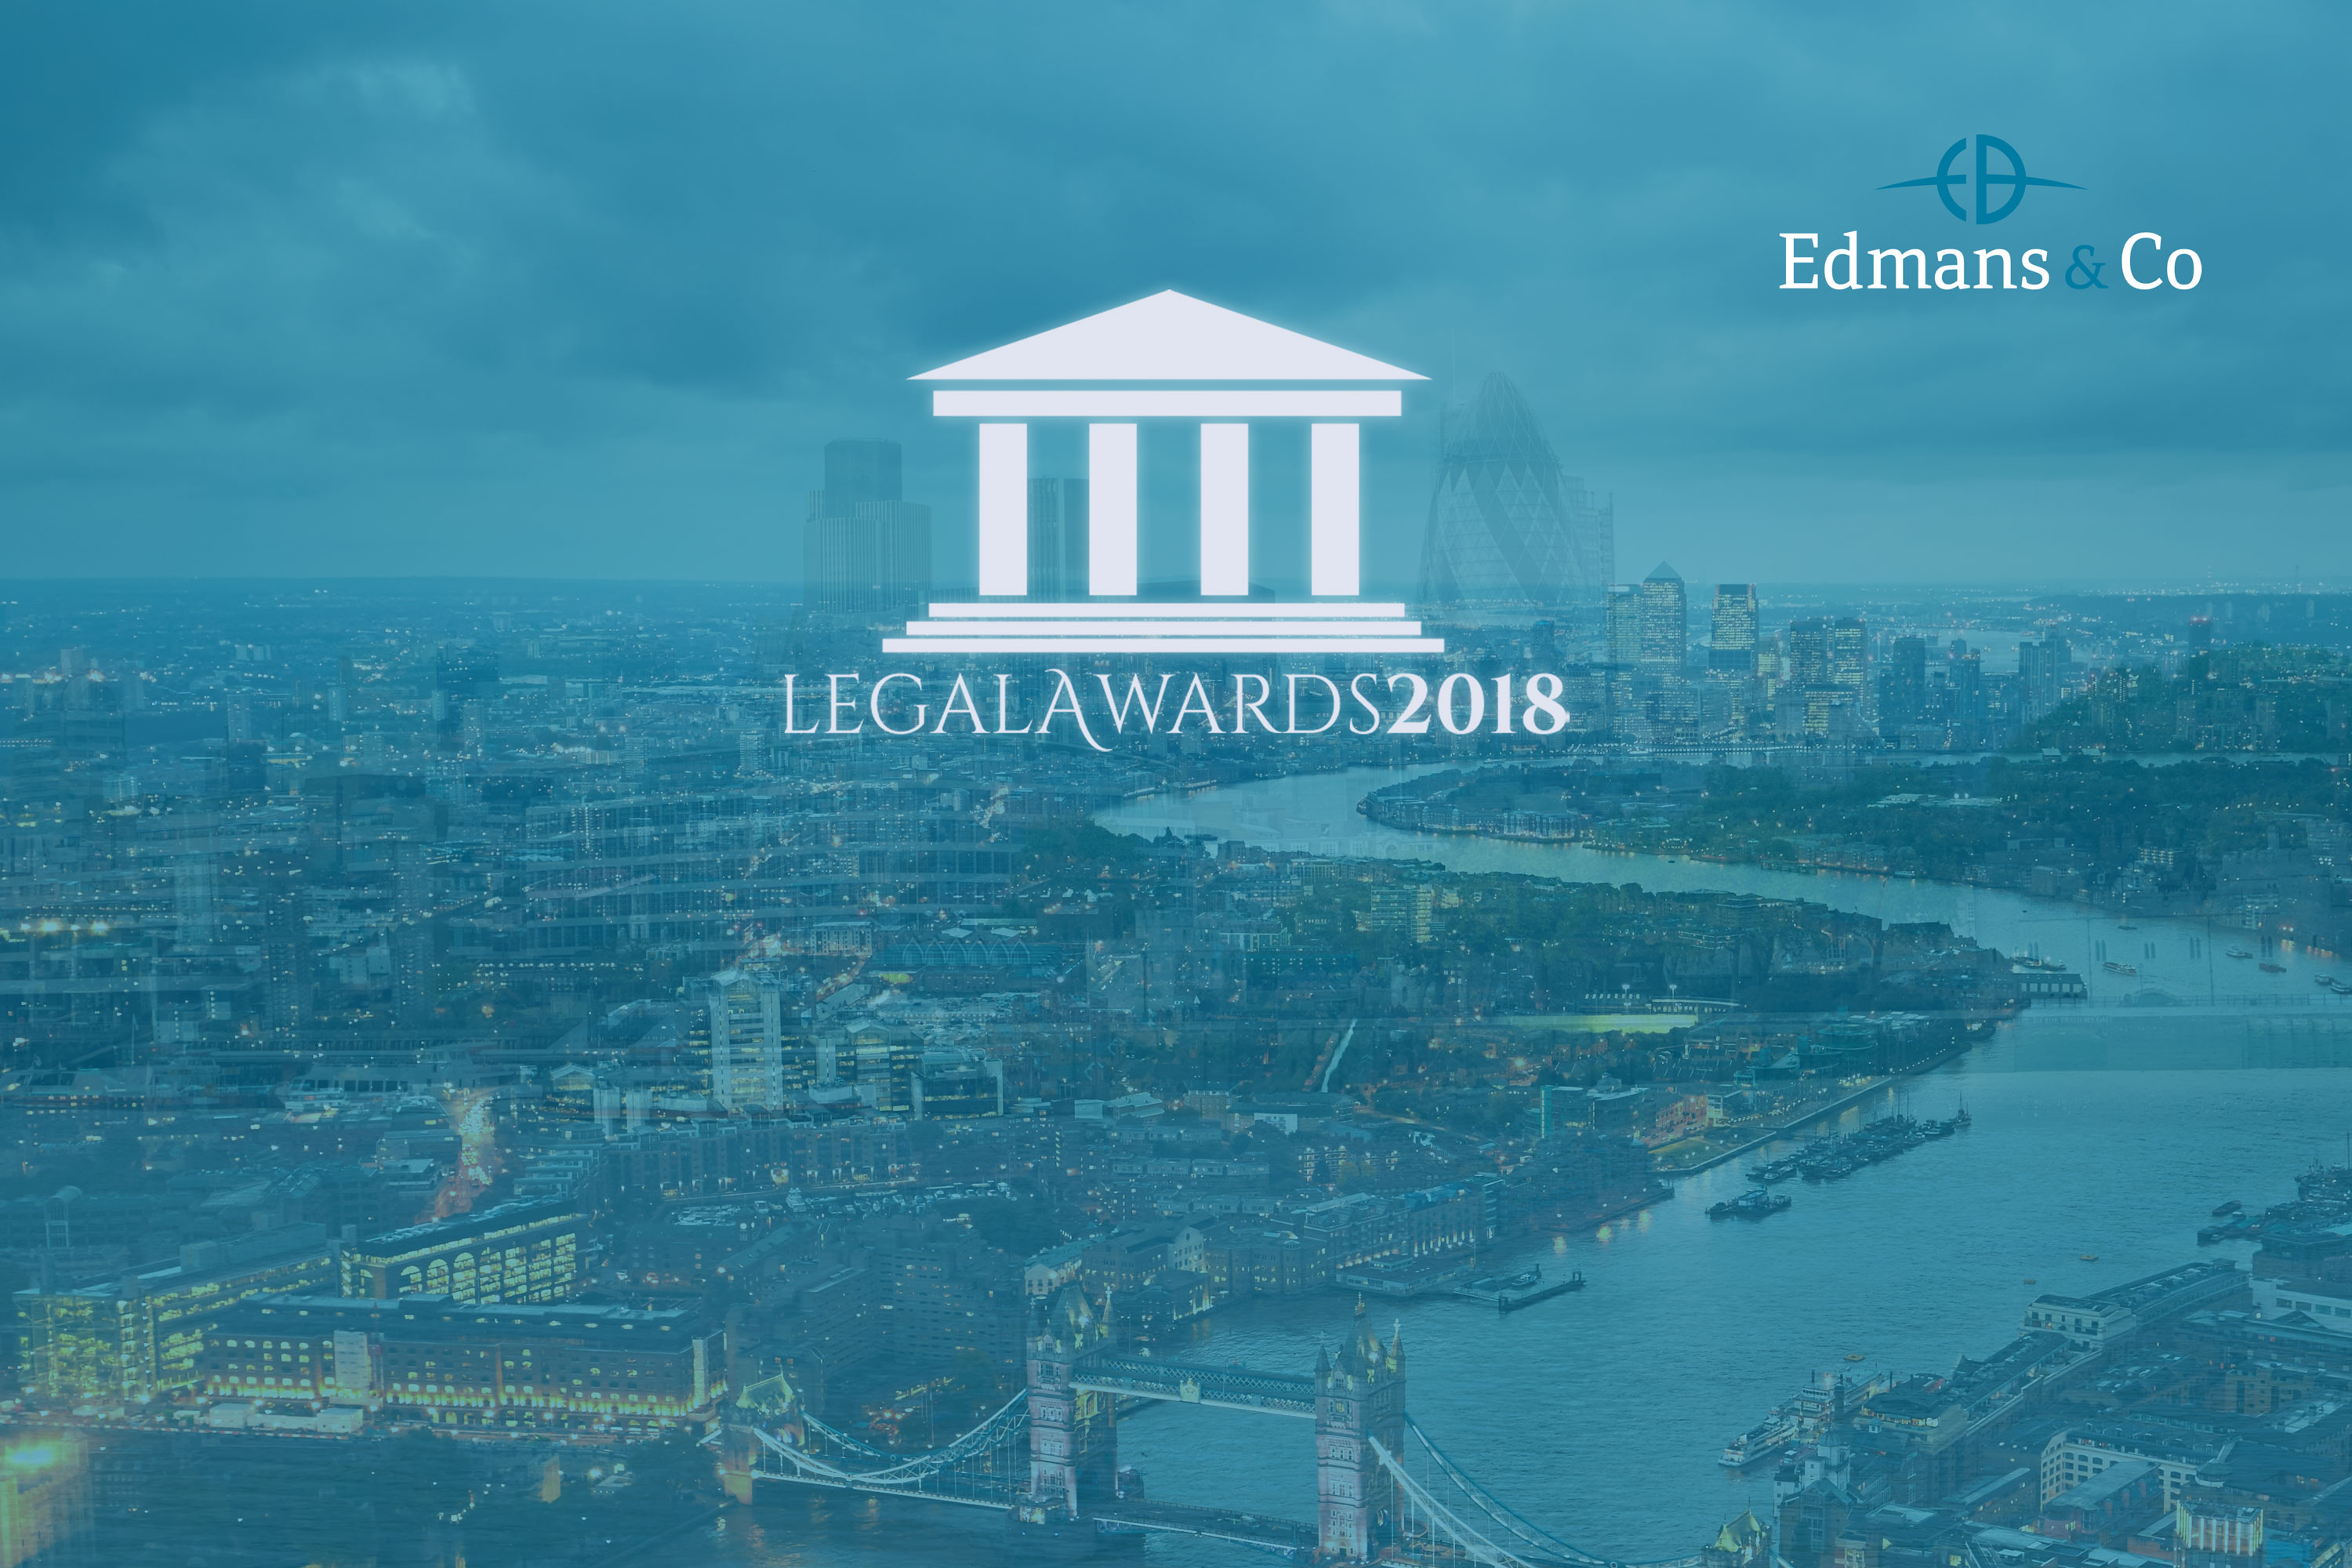 Edmans Co Immigration Law Firm of the Year Legal Awards 2018